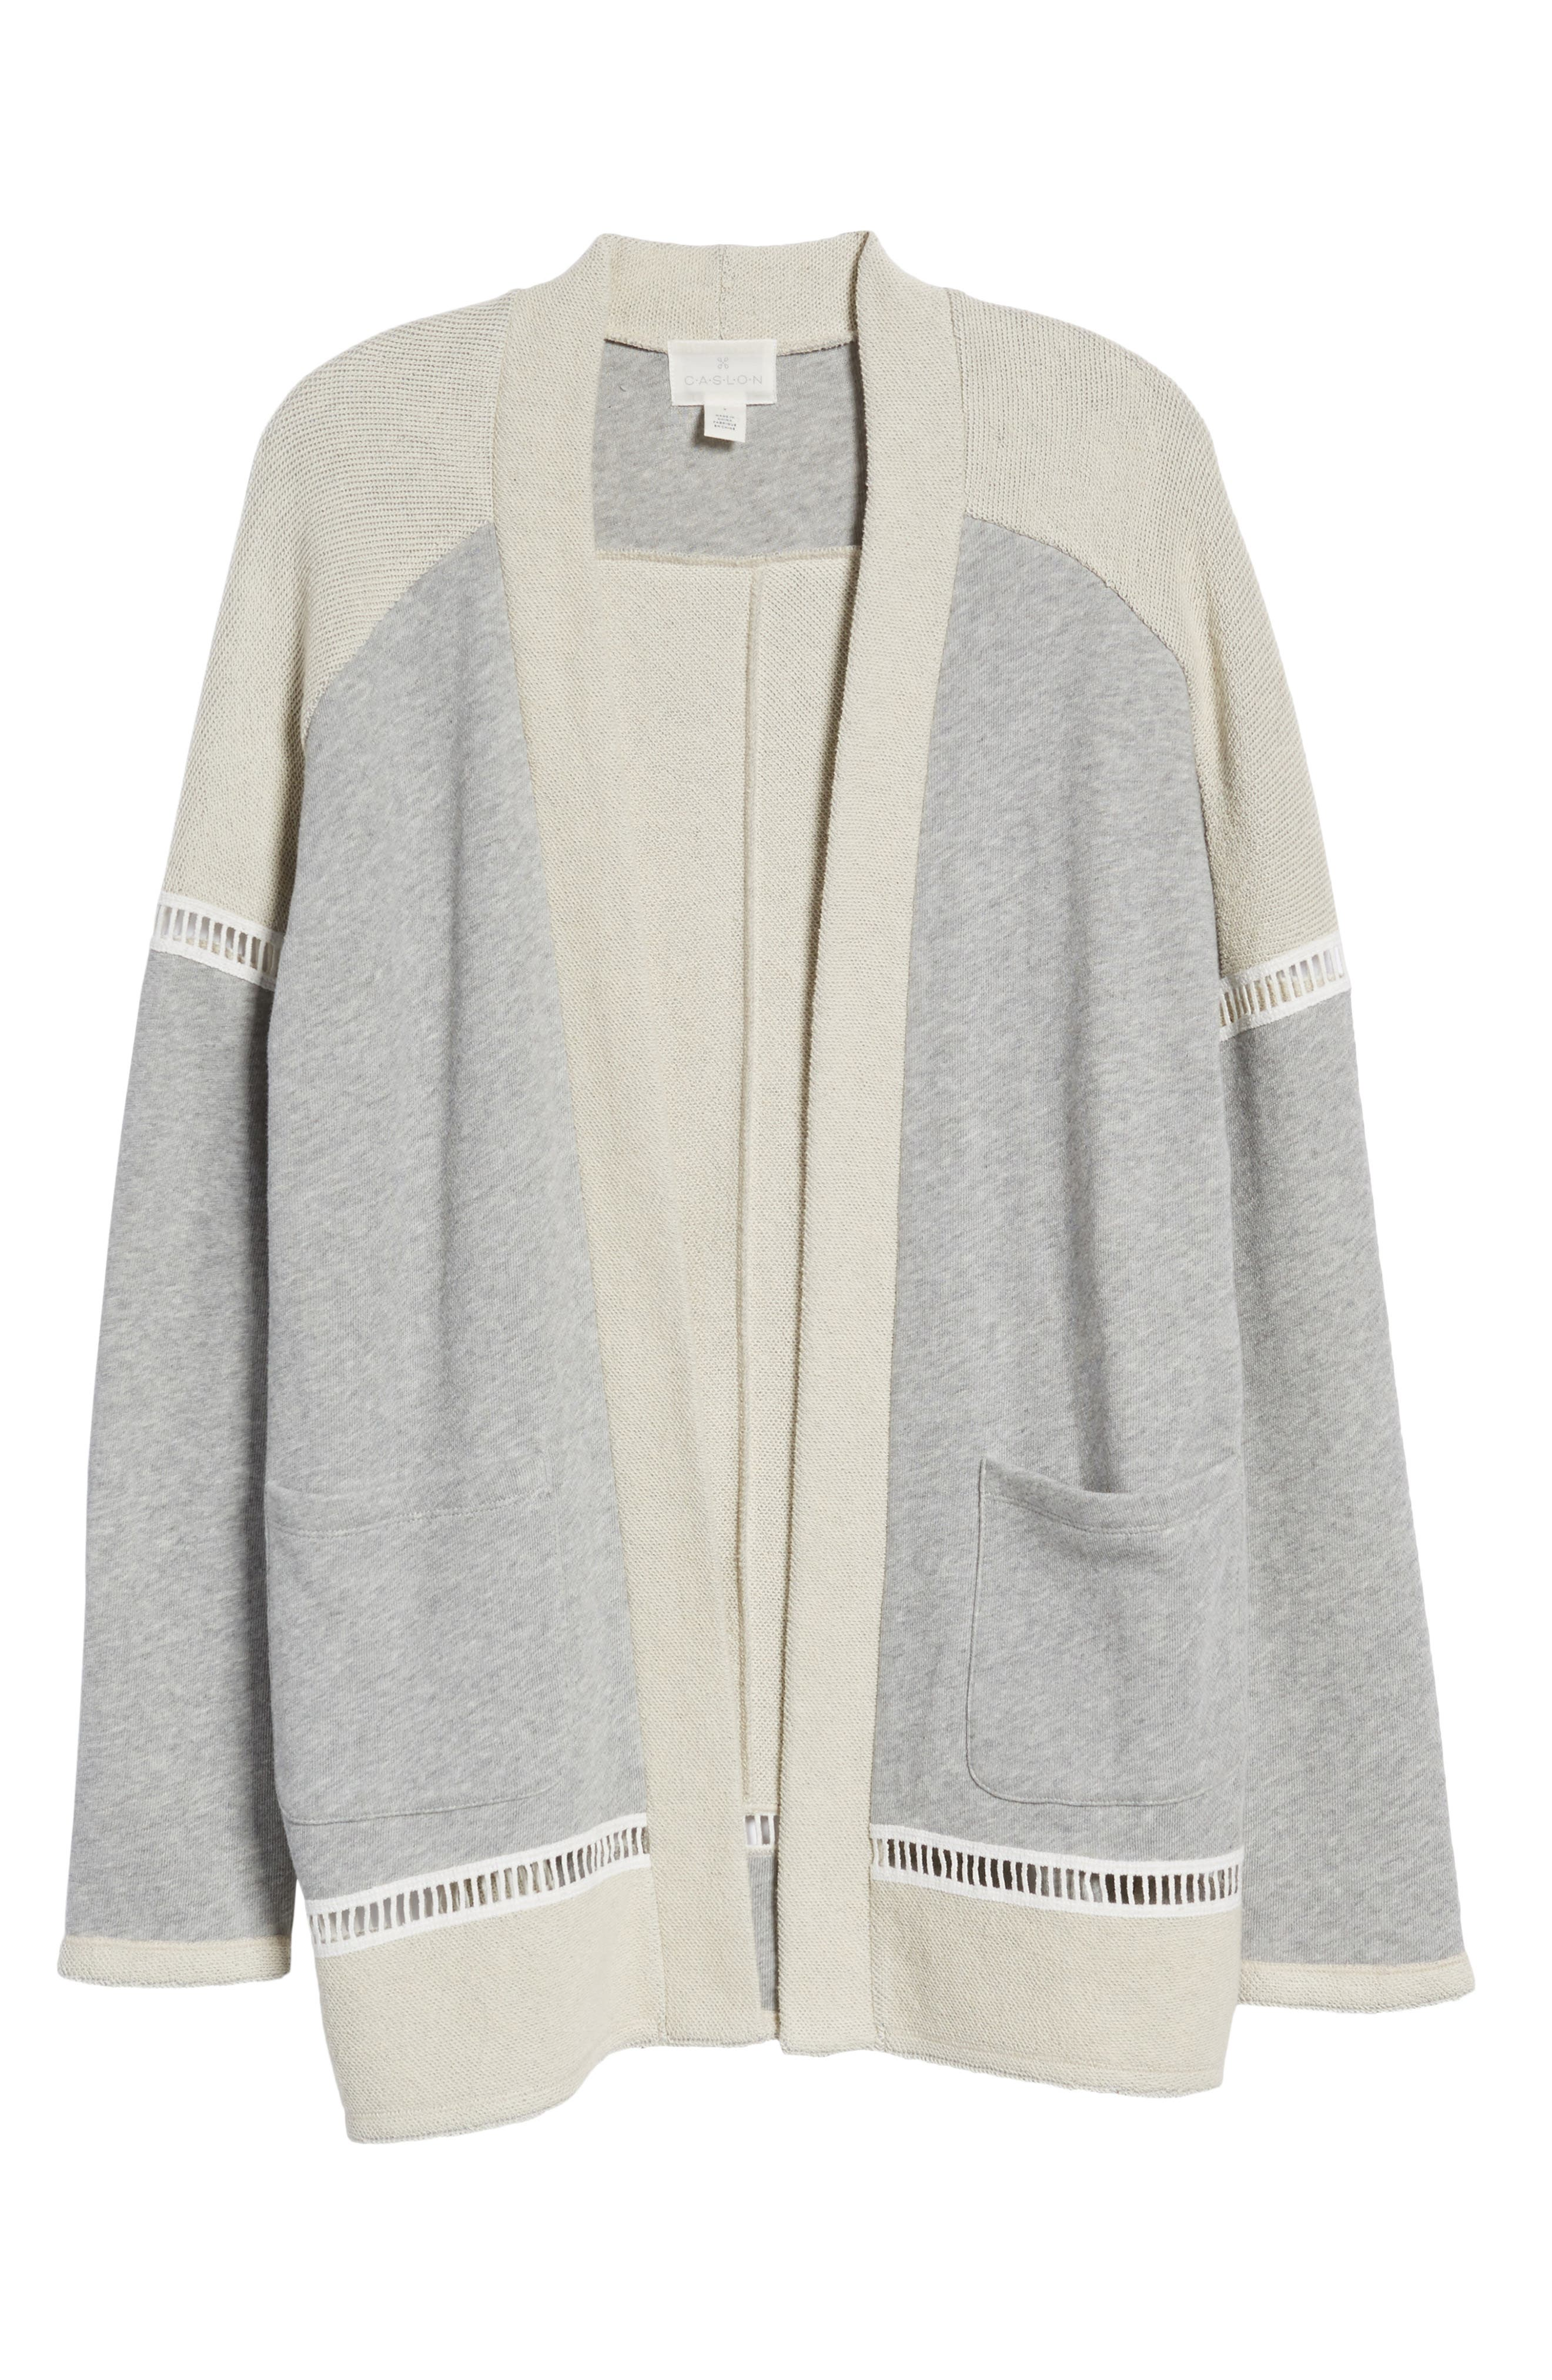 French Terry Open Front Cotton Cardigan,                             Alternate thumbnail 6, color,                             Grey Heather